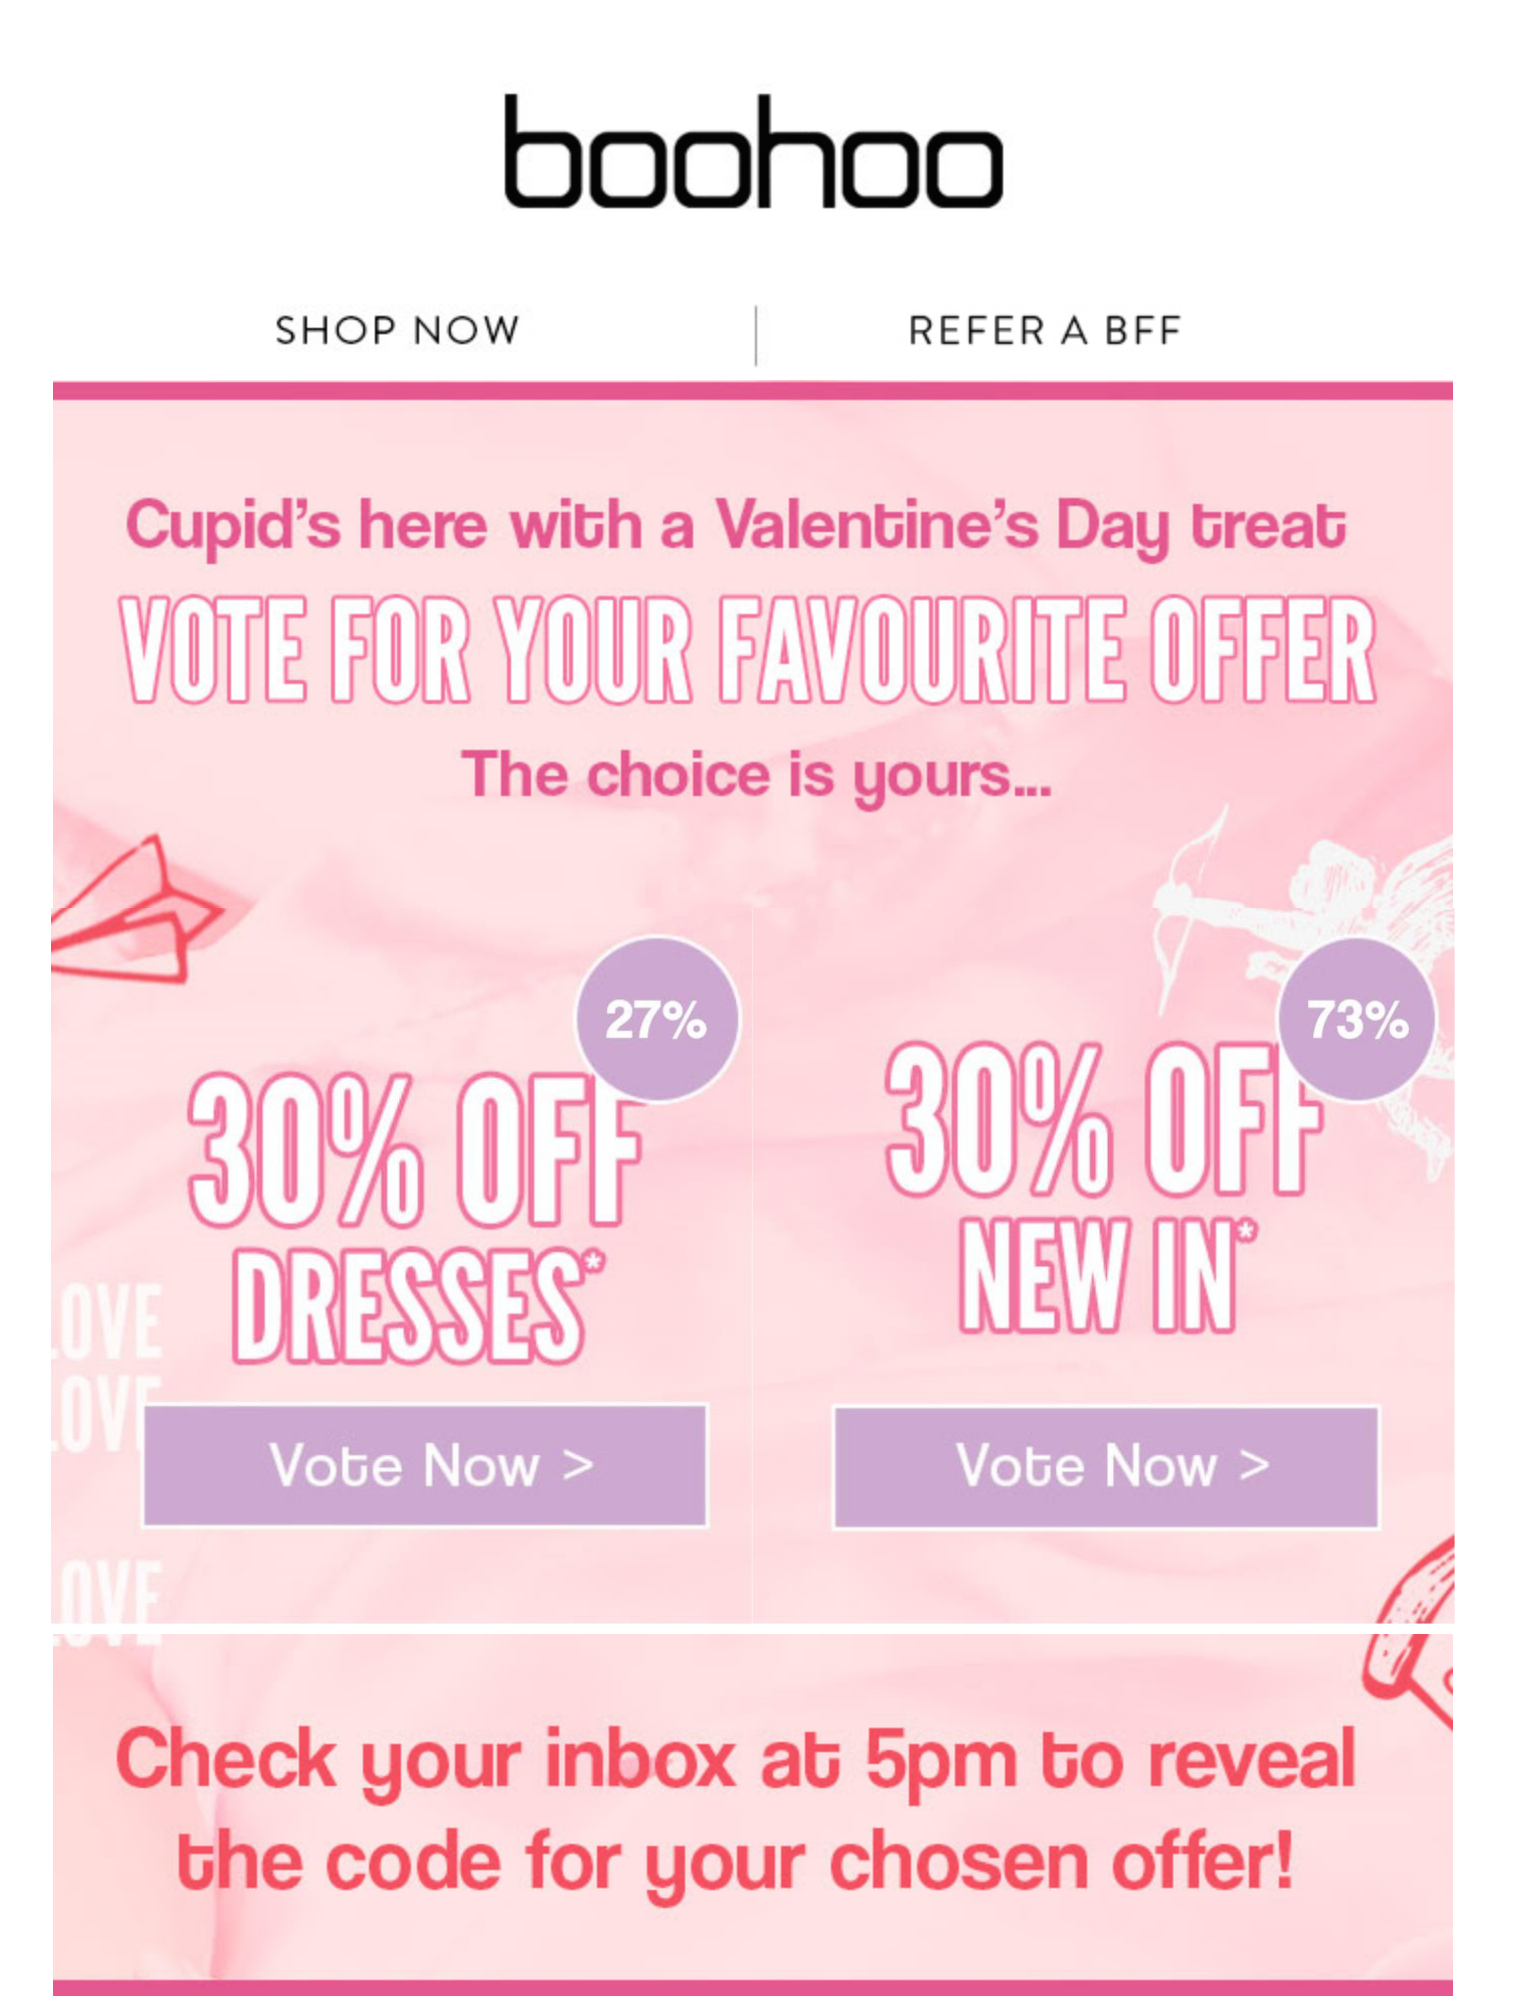 boohoo-email1-poll copy